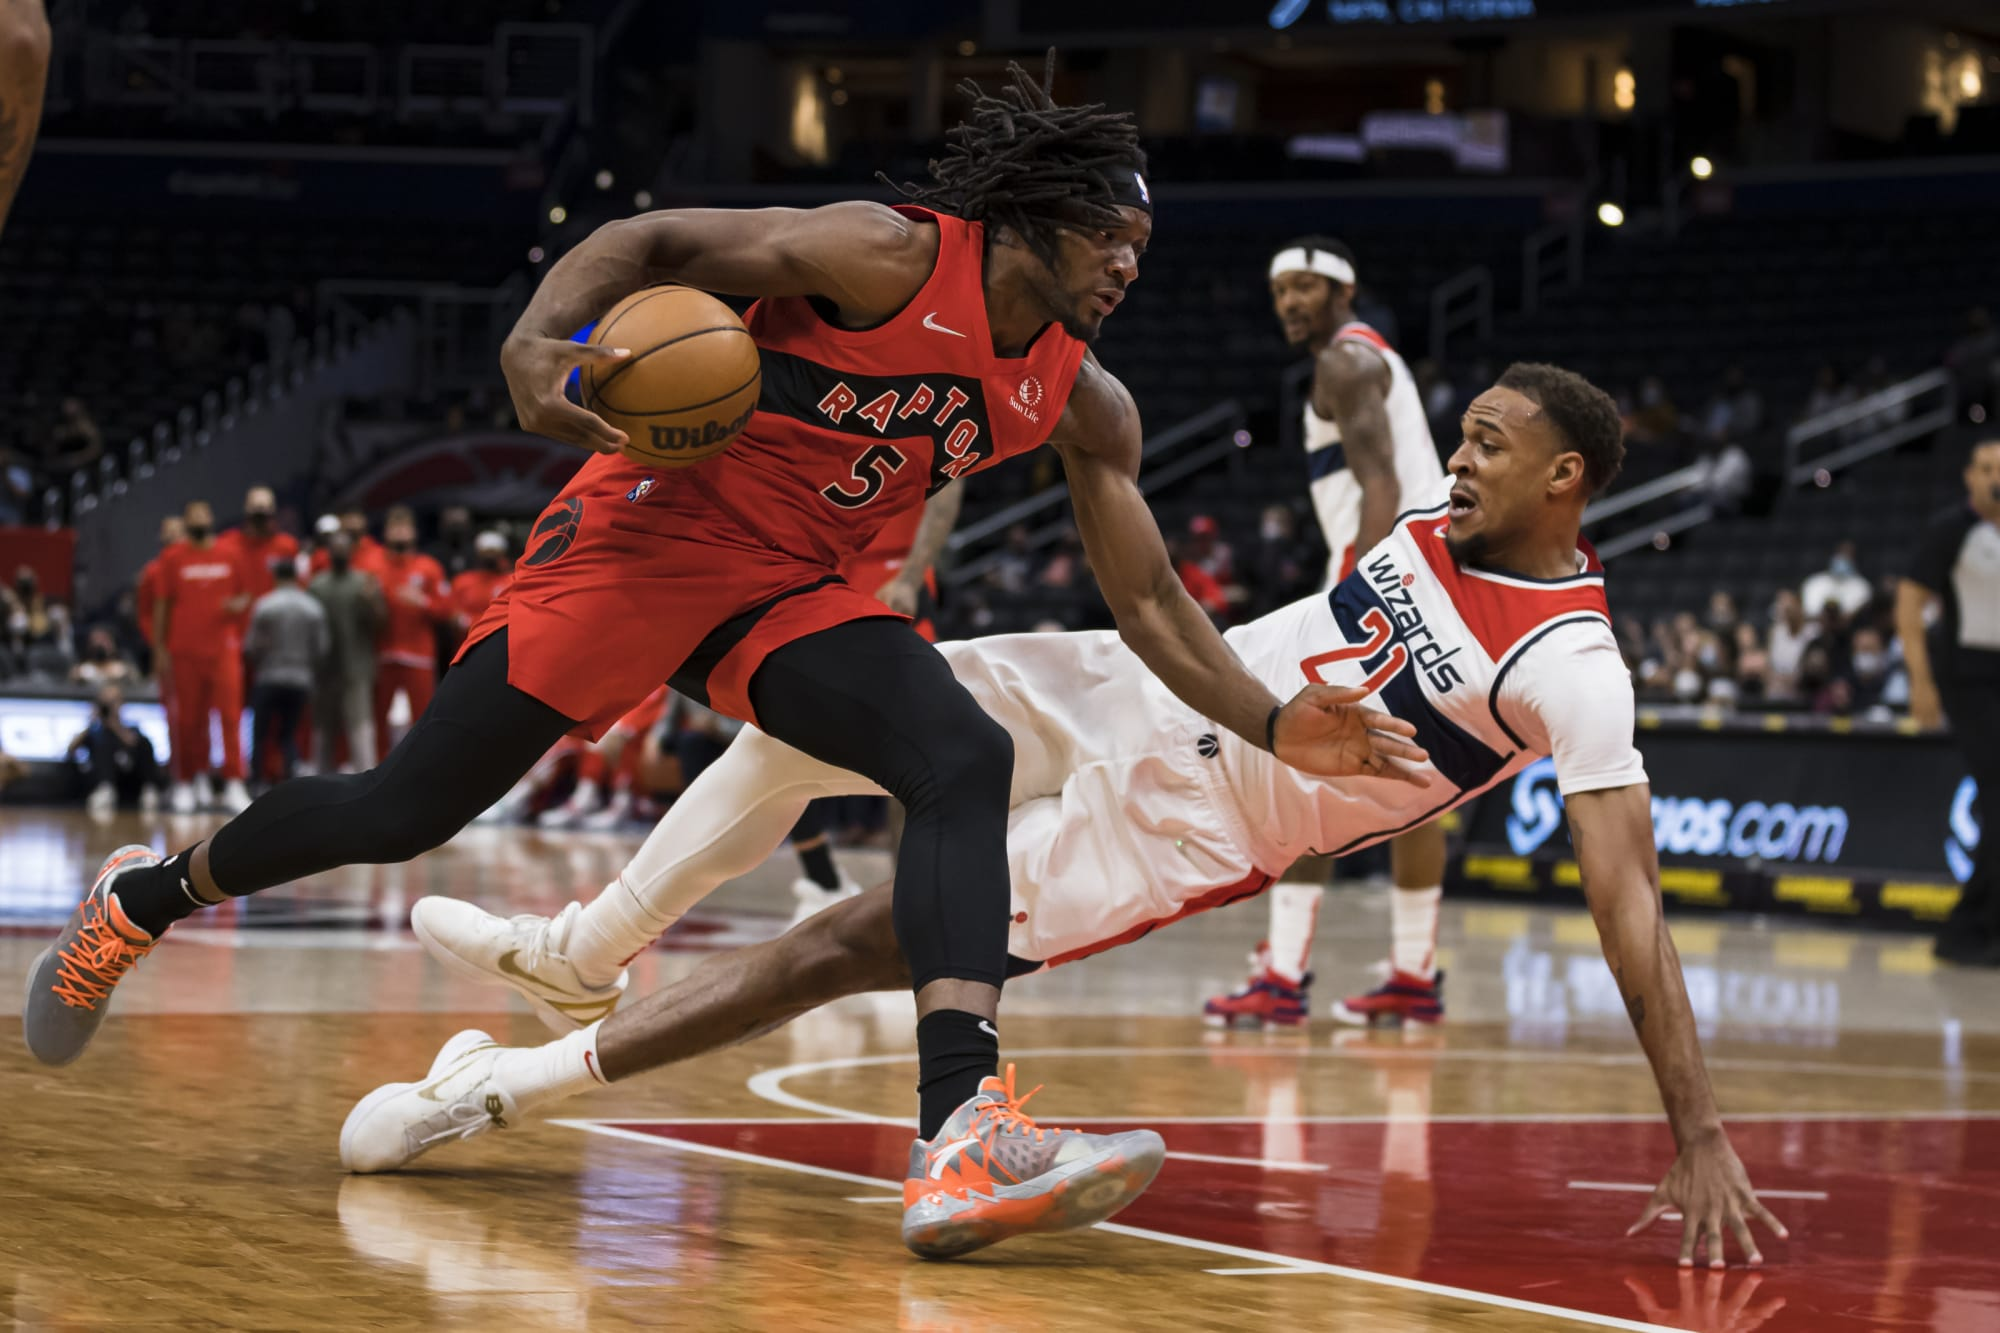 Raptors Game Tonight: Raptors vs Wizards Odds, Starting Lineup, Injury Report, Predictions, TV Channel for Oct. 20